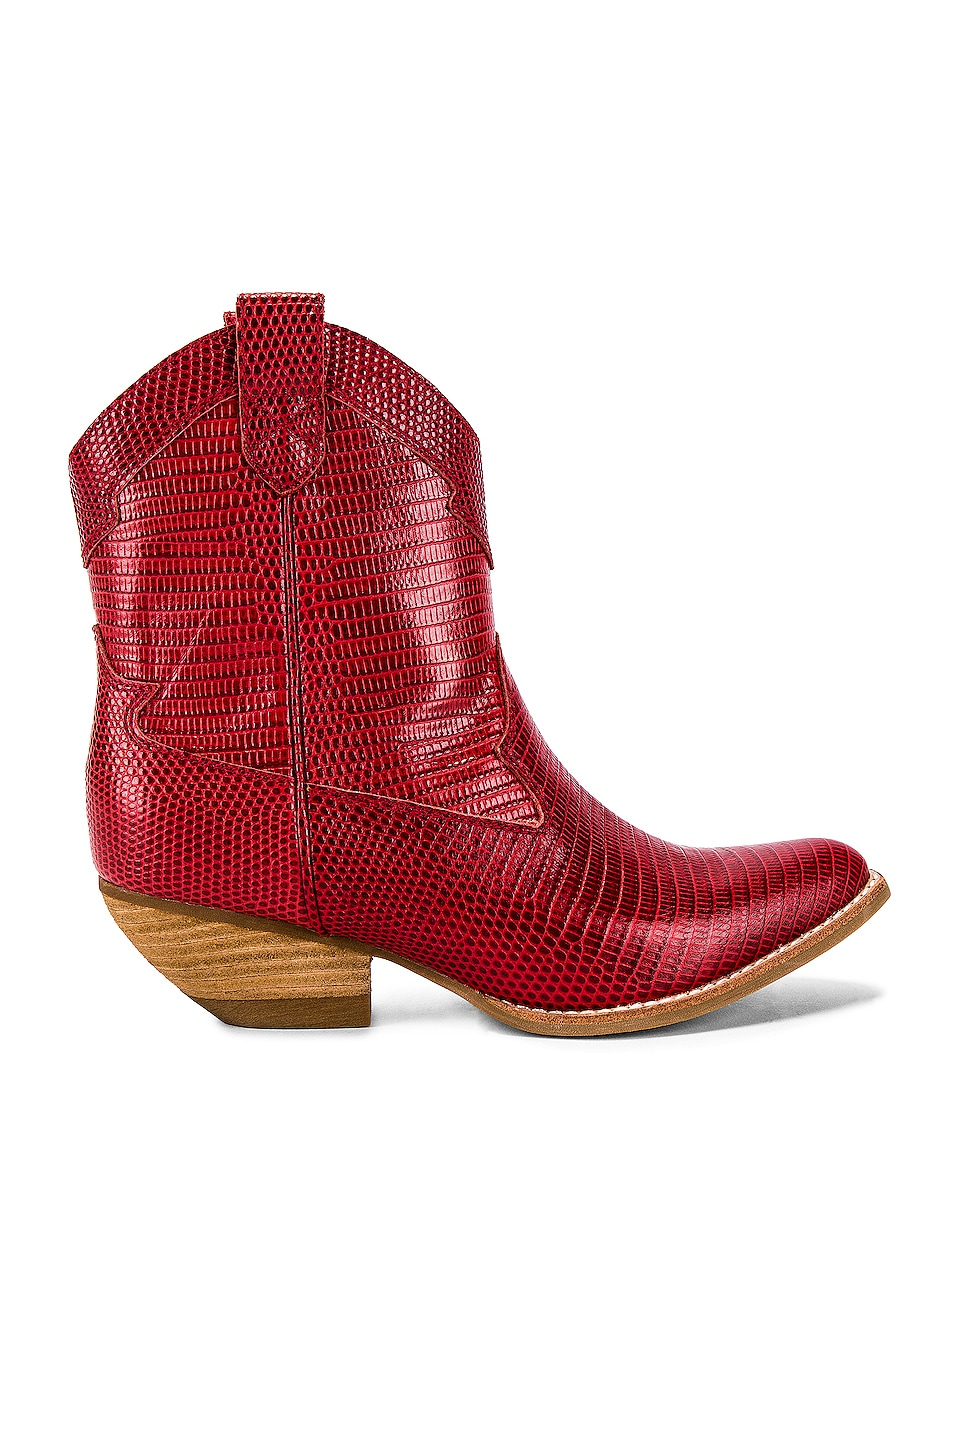 Jeffrey Campbell Calvera Bootie in Red Lizard